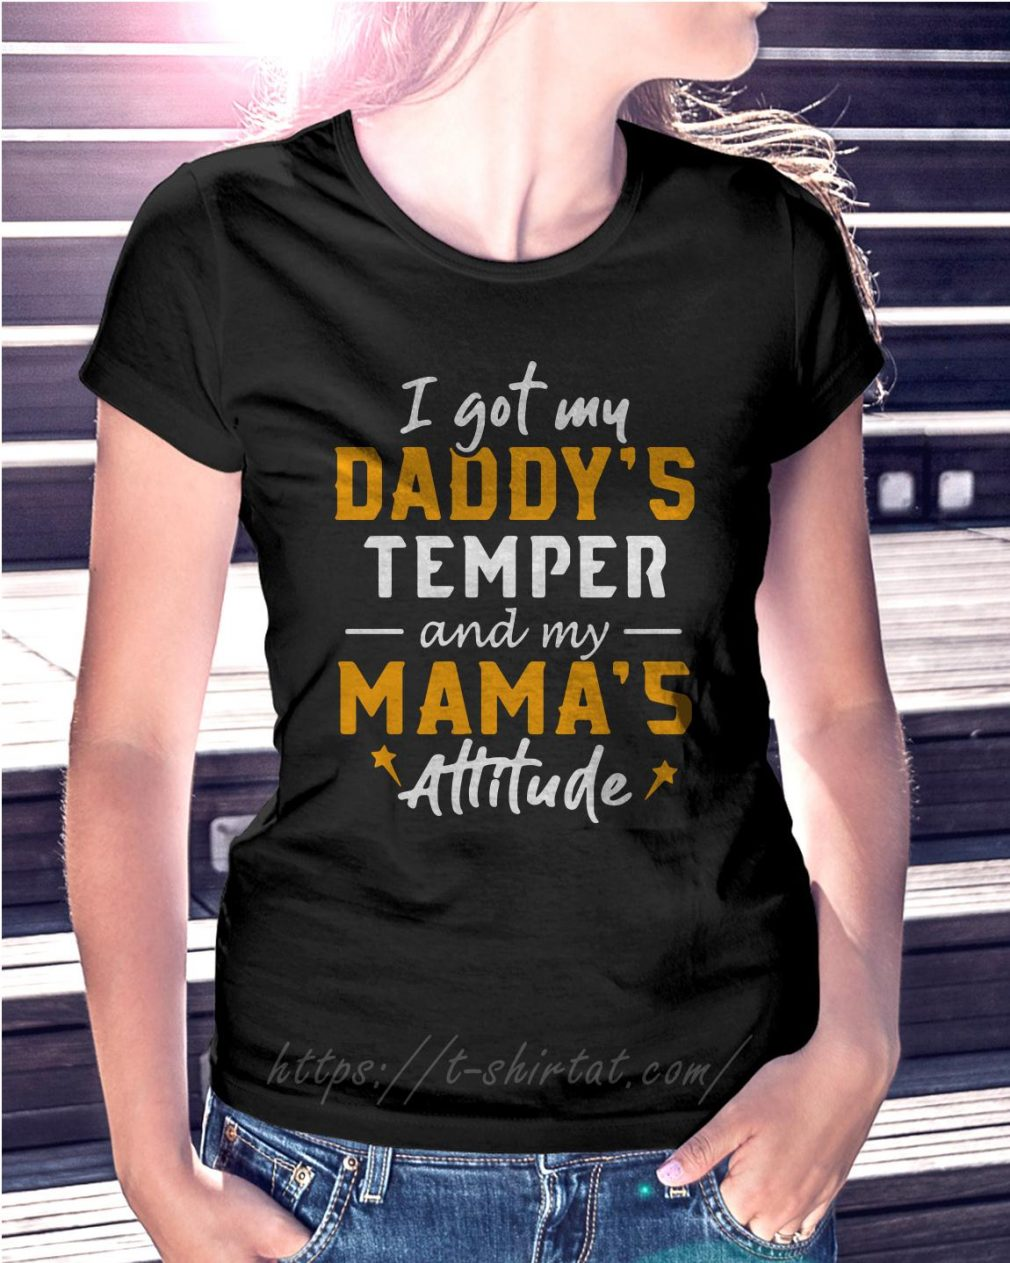 I got my Daddy's temper and my Mama's attitude Ladies Tee